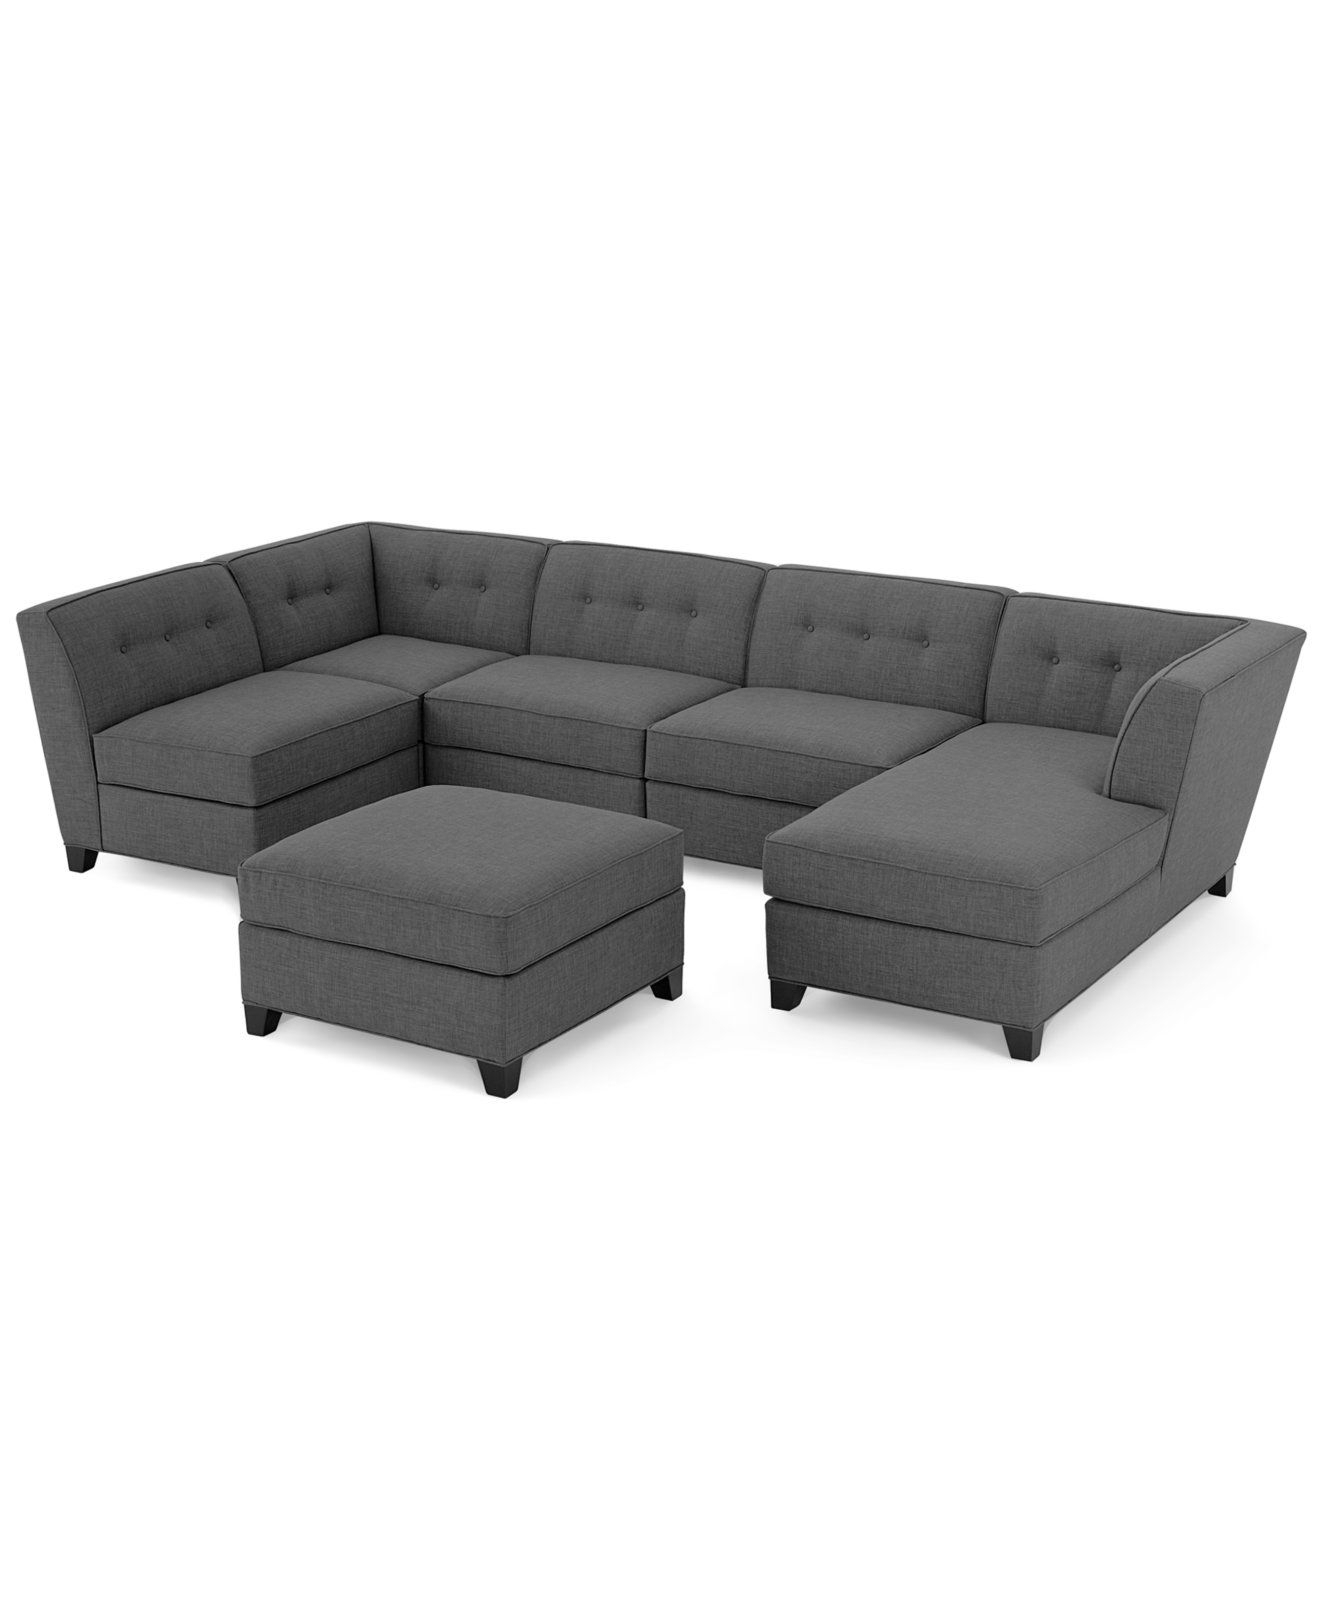 Harper Fabric Modular Sectional Sofa, 6 Piece (Square Corner Unit With Harper Down Oversized Sofa Chairs (Image 7 of 20)